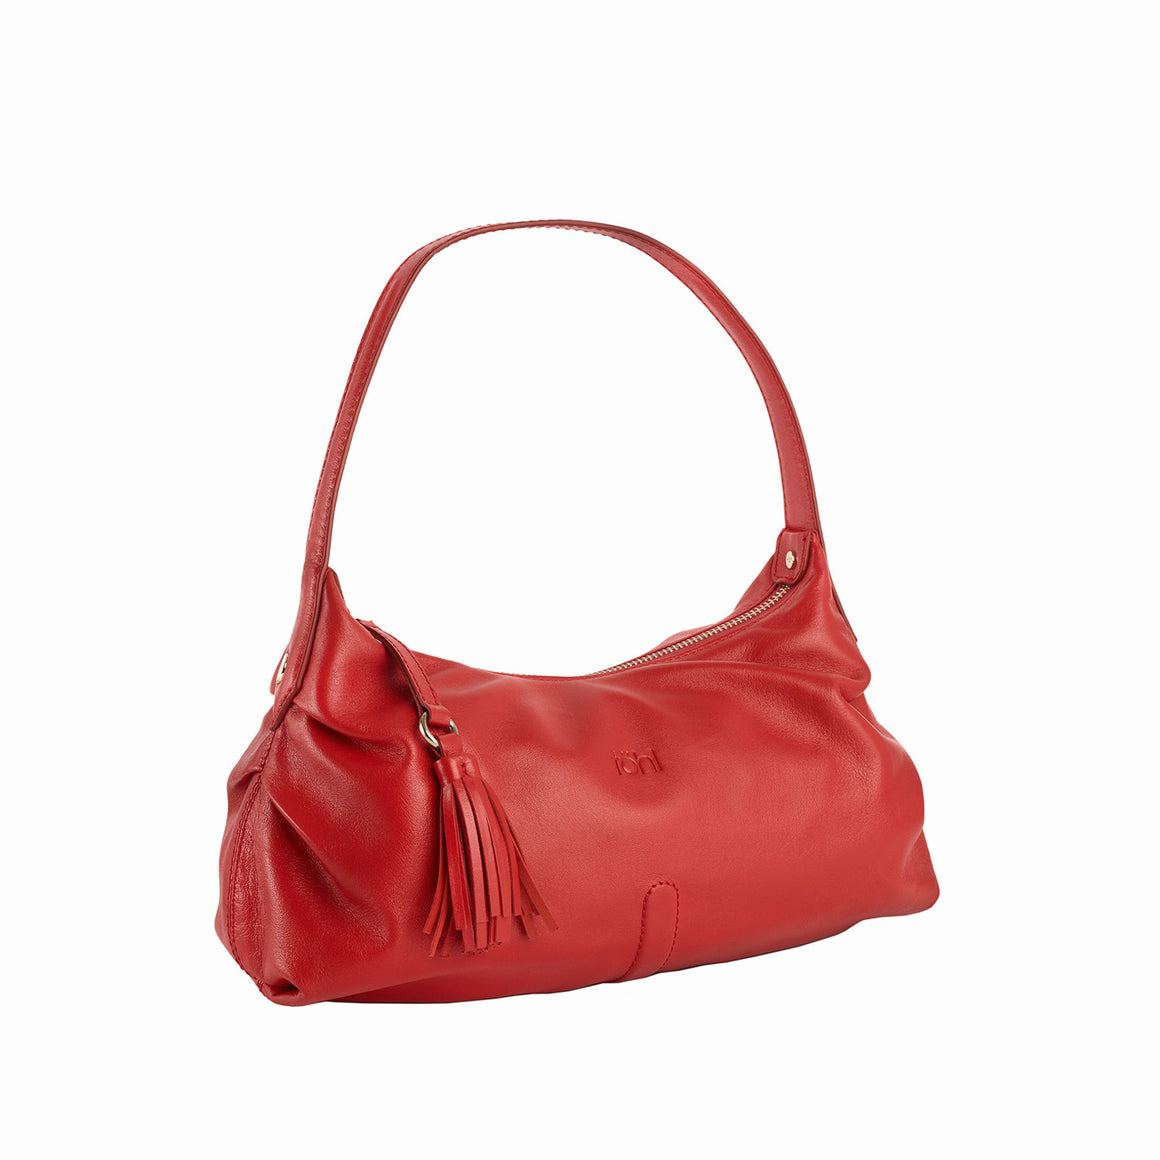 HH 0002 - TOHL MARISA WOMEN'S SHOULDER BAGUETTE - SPICE RED